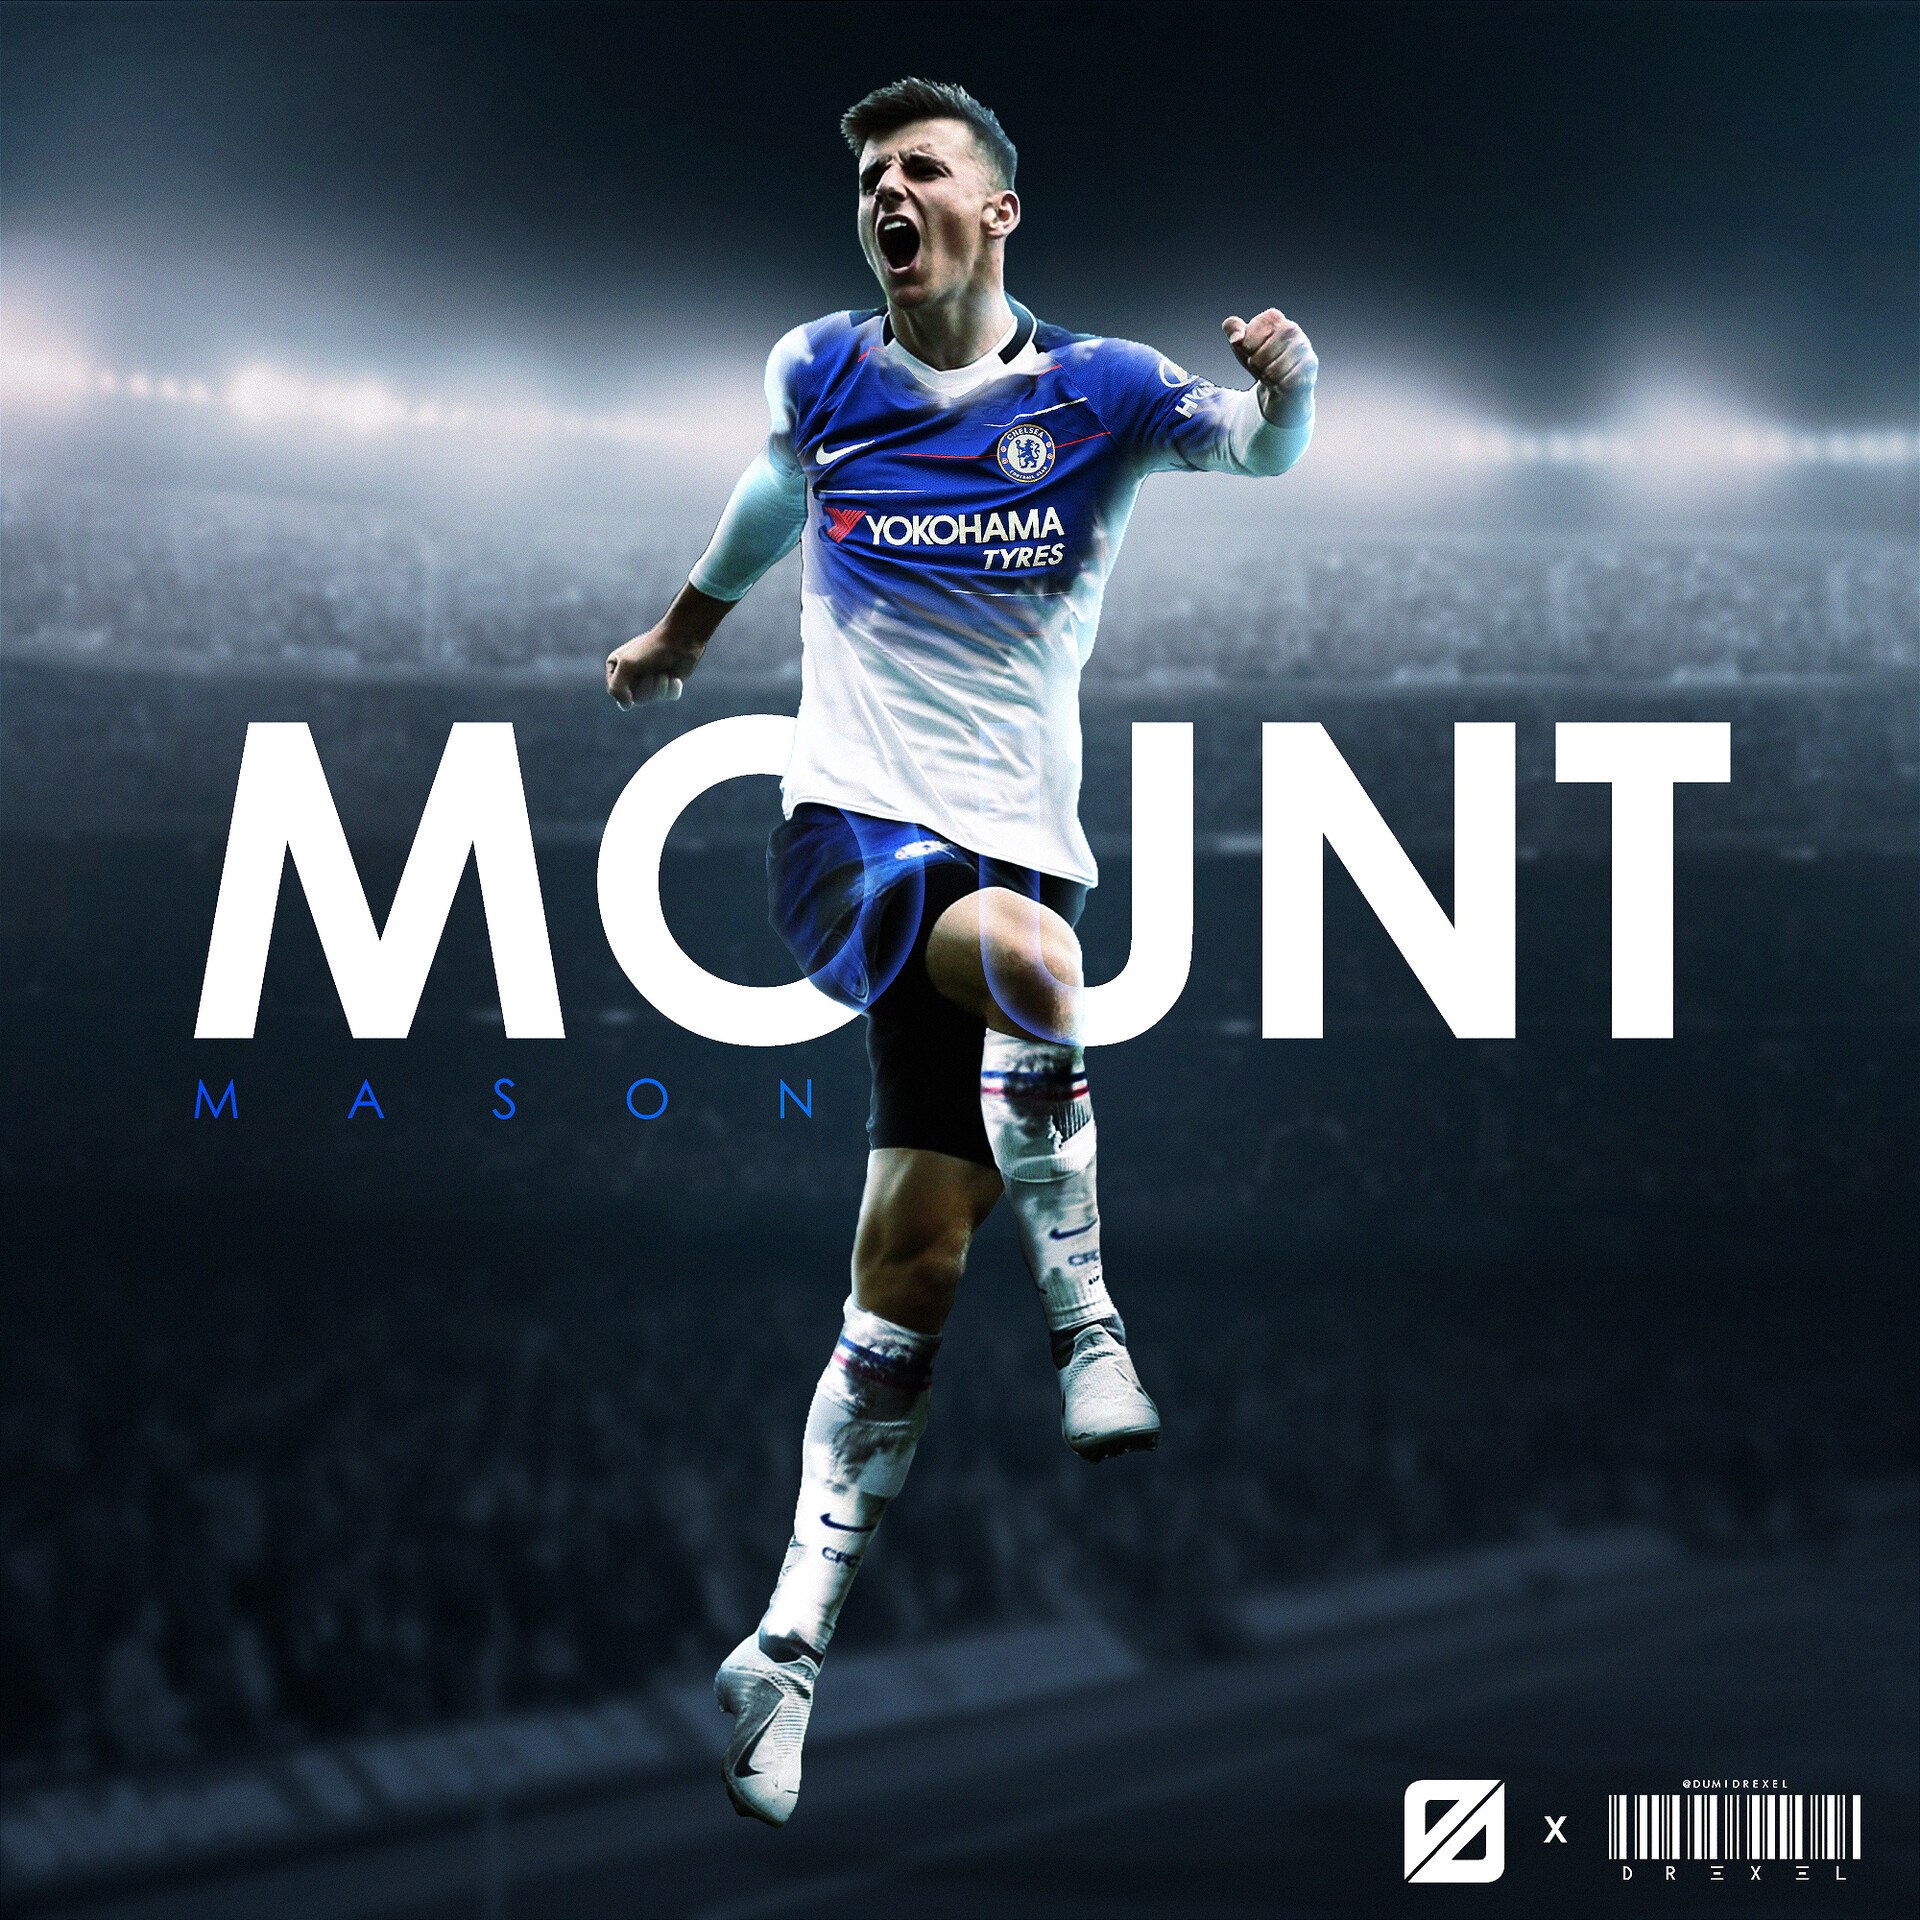 Mason Mount HD Mobile Wallpapers At Chelsea FC Chelsea Core